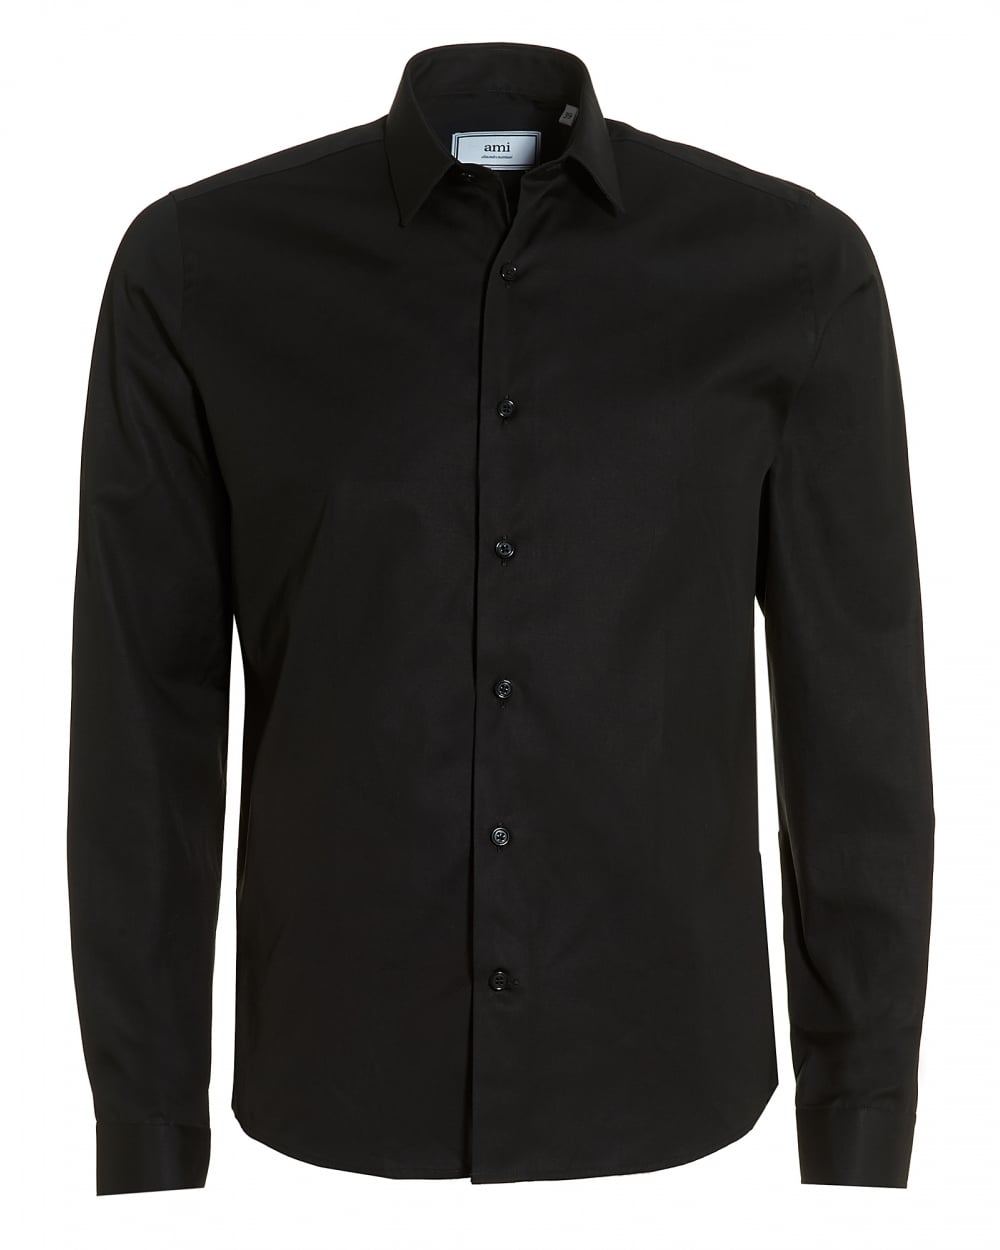 Ami mens black cotton shirt regular fit formal shirt for Black tuxedo shirt for men